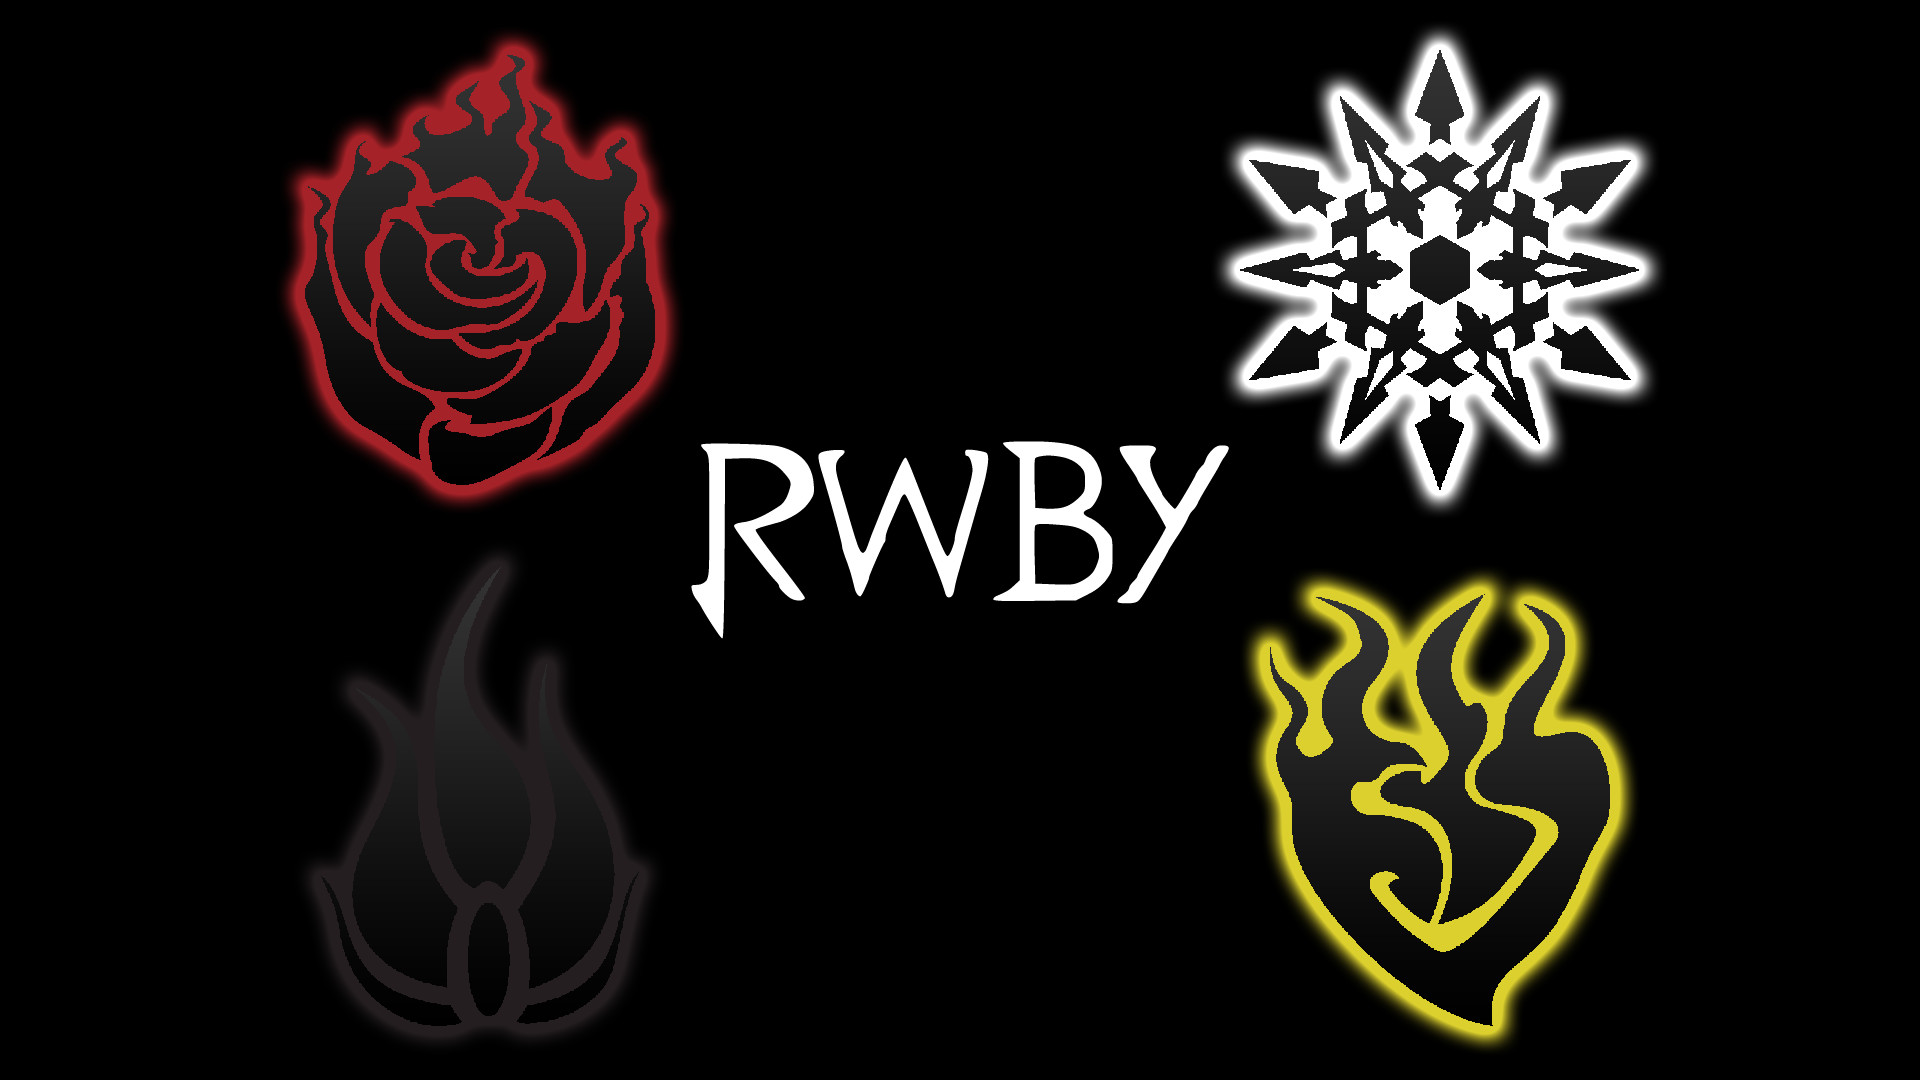 Simple, Subtle RWBY Wallpapers